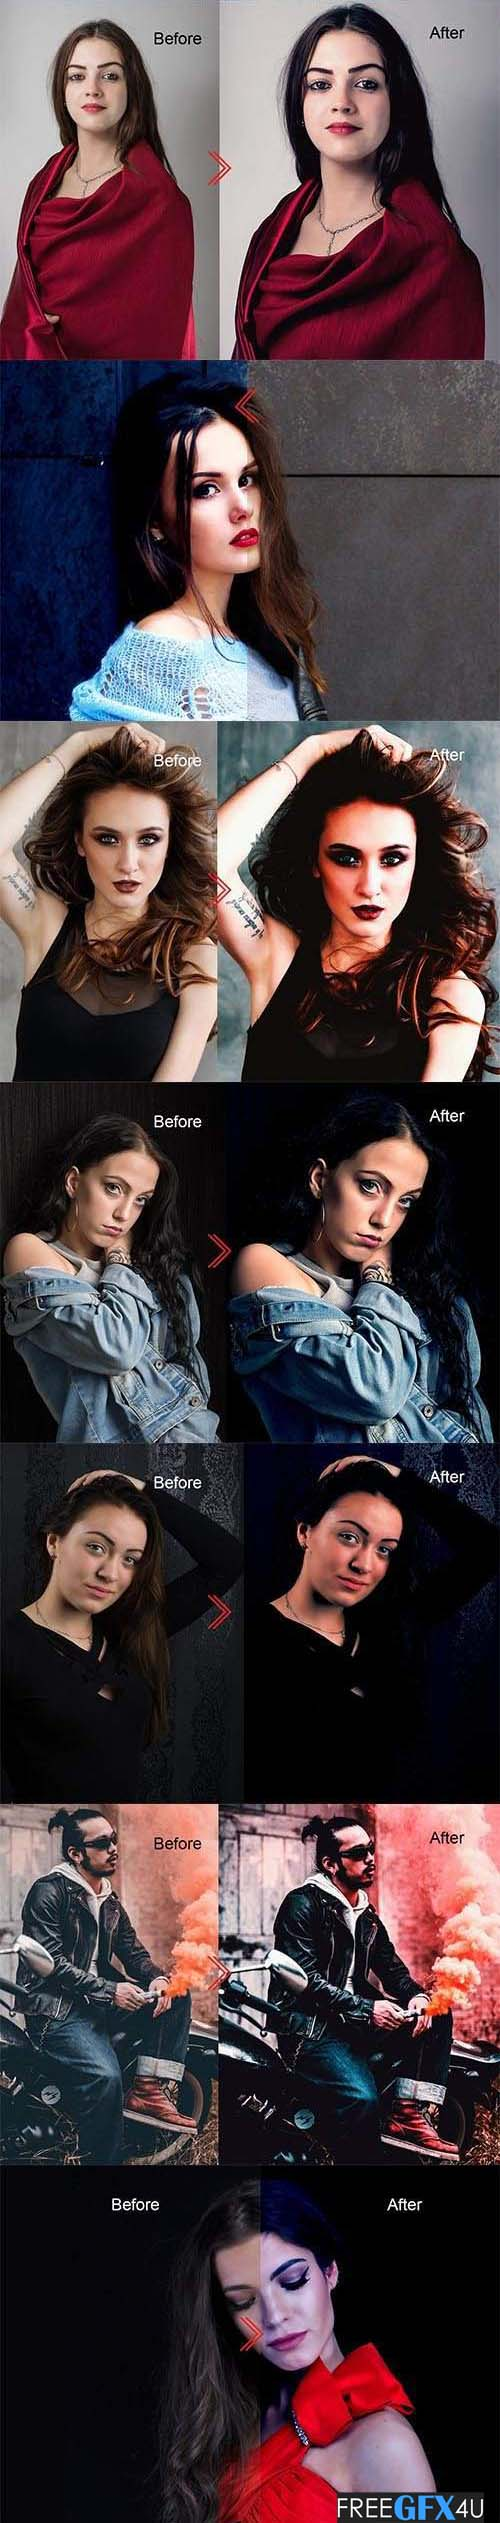 Movie Style Photo Effect Action